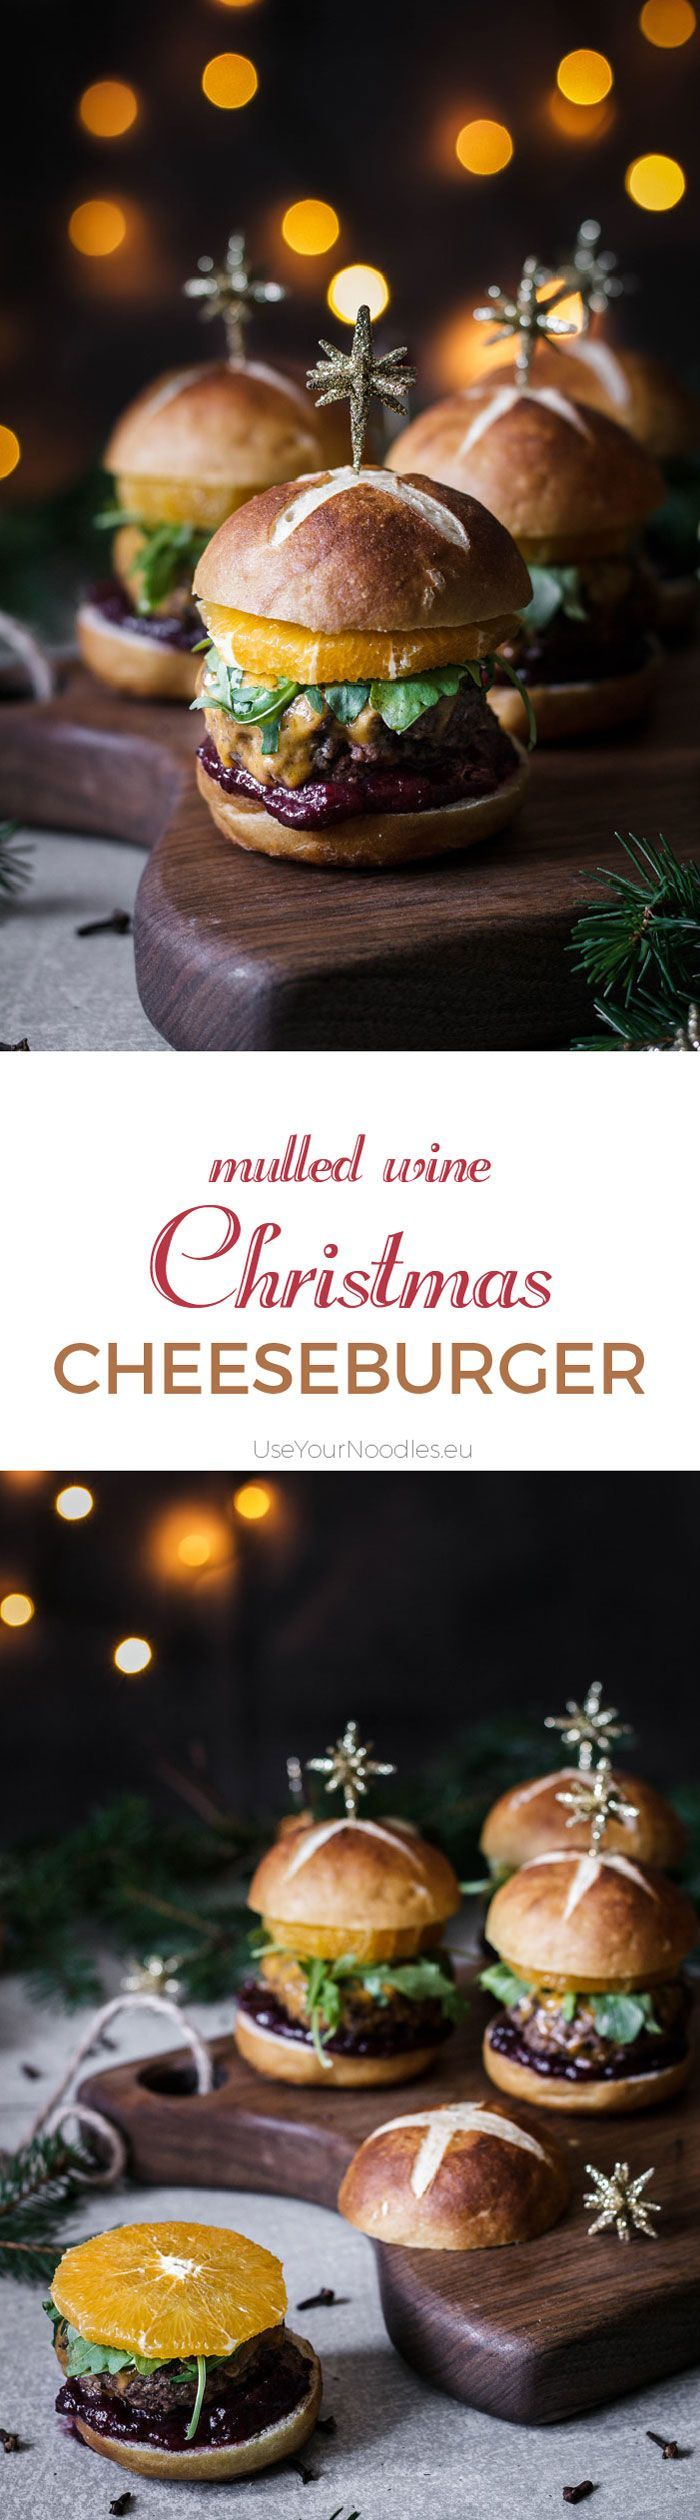 All the amazing tastes of Christmas in one mulled wine Christmas cheeseburger. Who says Christmas should be celebrated with a roast? Click to find the whole recipe or pin and save for later!